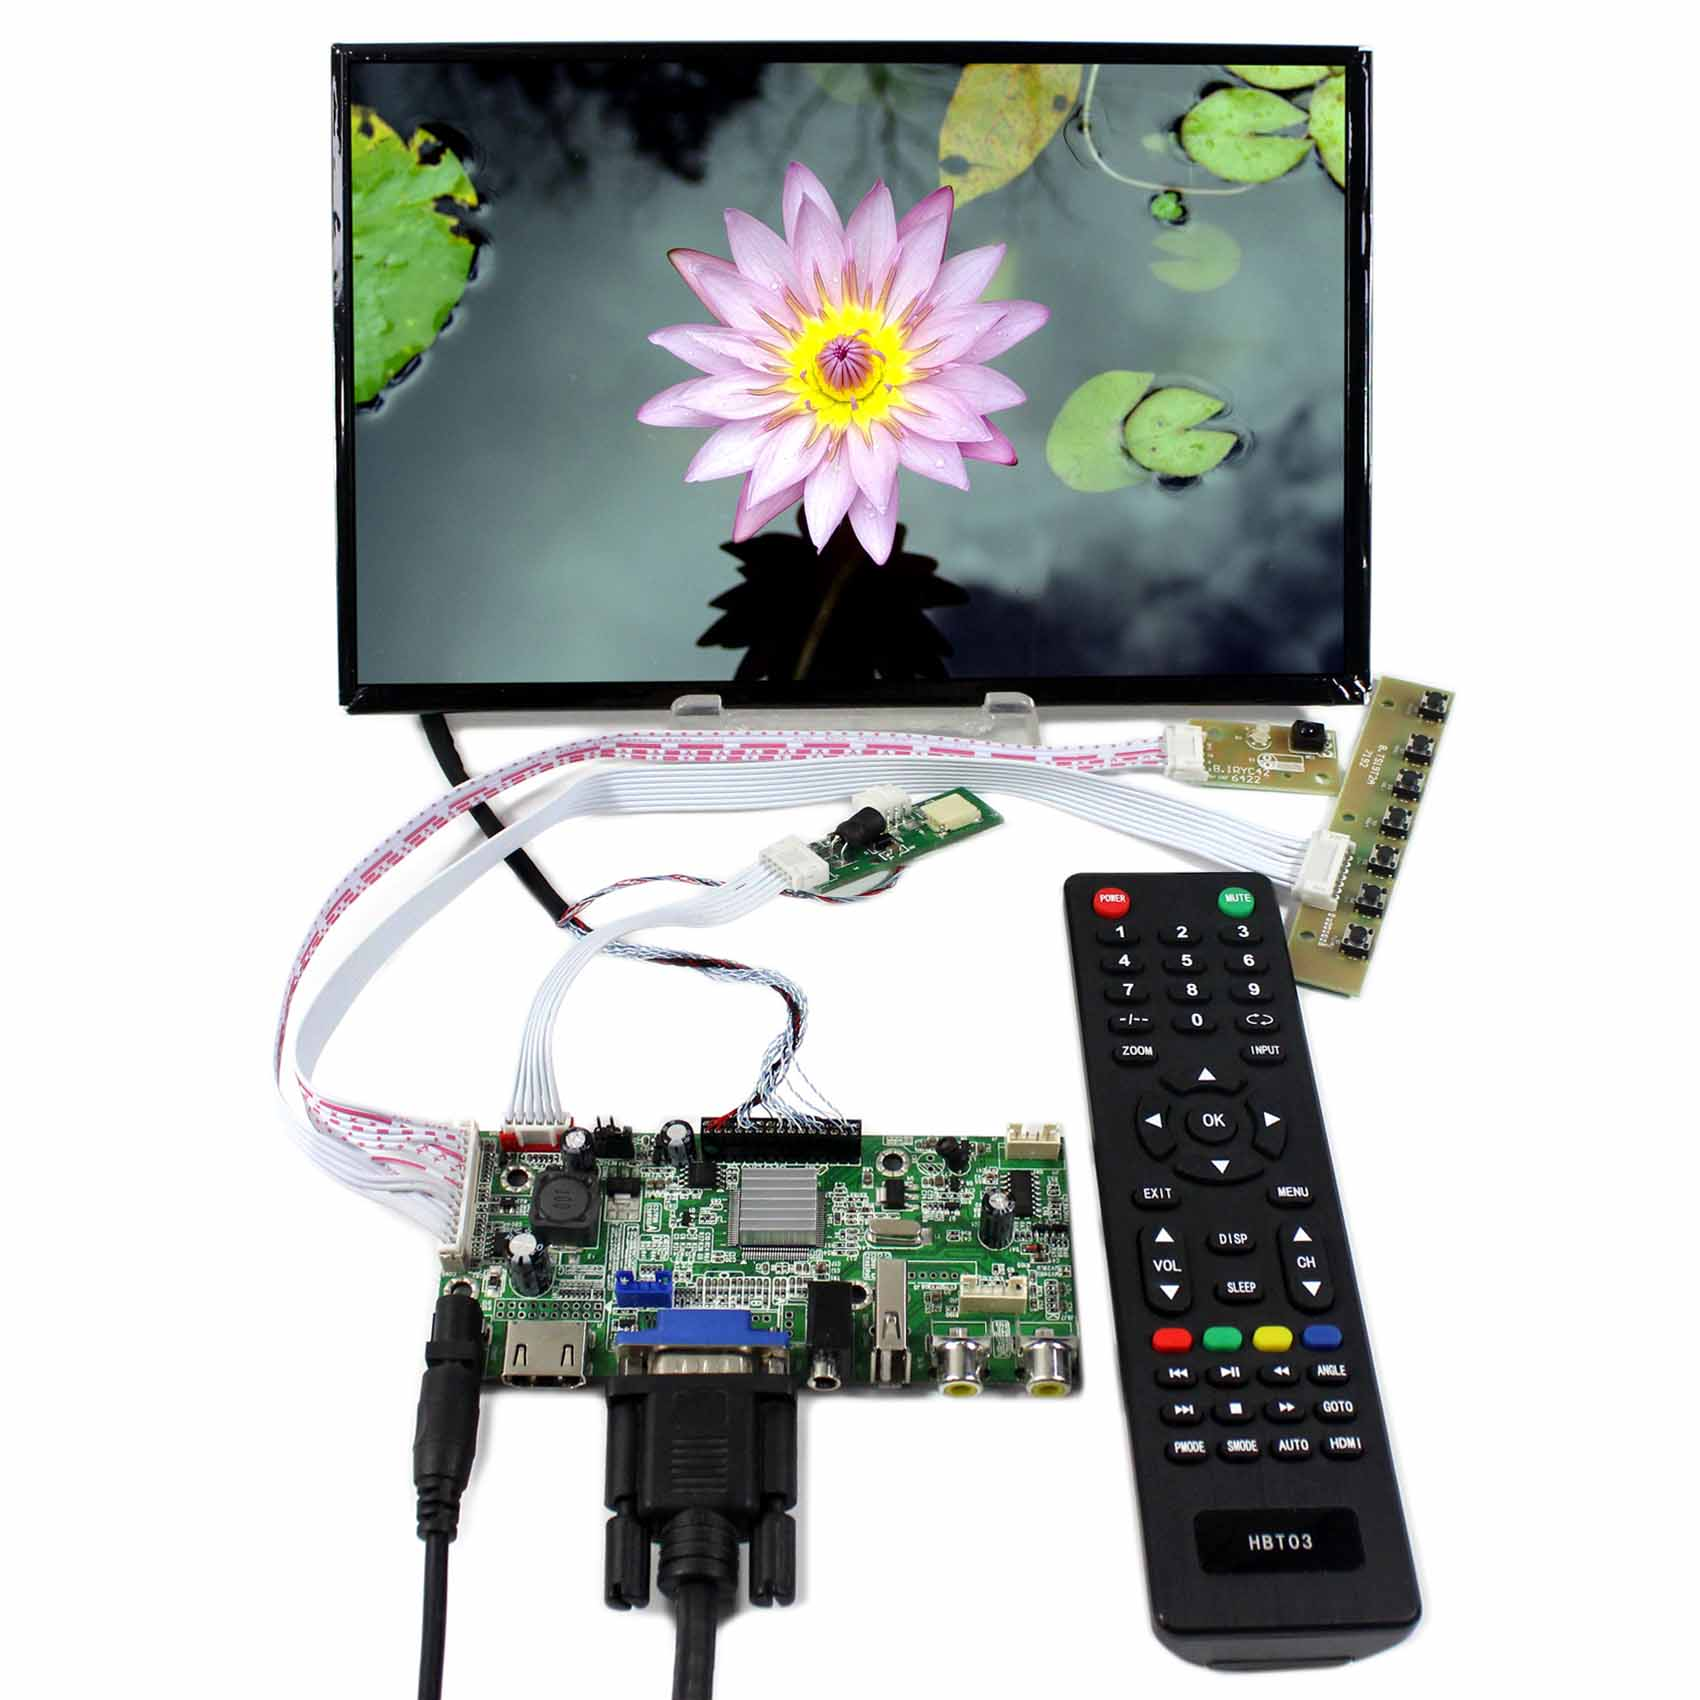 HDMI+VGA+AV+Audio+USB LCD Controller Board With 10.1inch 1920x1200 B101UAN02.1 LCD ScreenHDMI+VGA+AV+Audio+USB LCD Controller Board With 10.1inch 1920x1200 B101UAN02.1 LCD Screen